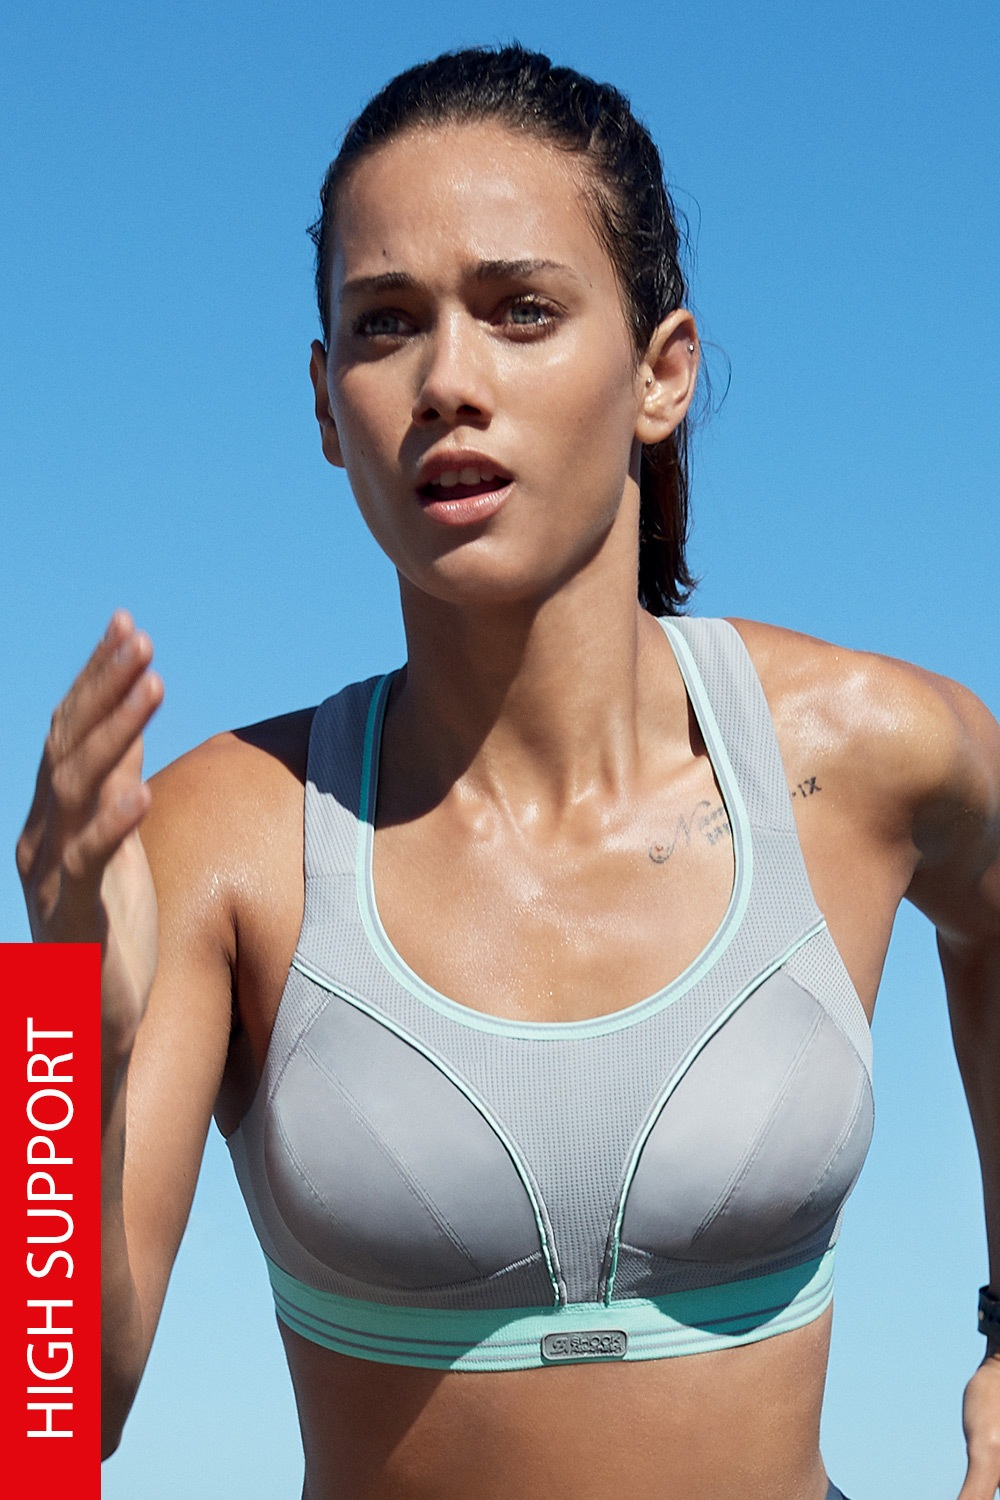 Sutien sport Shock Absorber Run Bra 0BZ de la Shock absorber